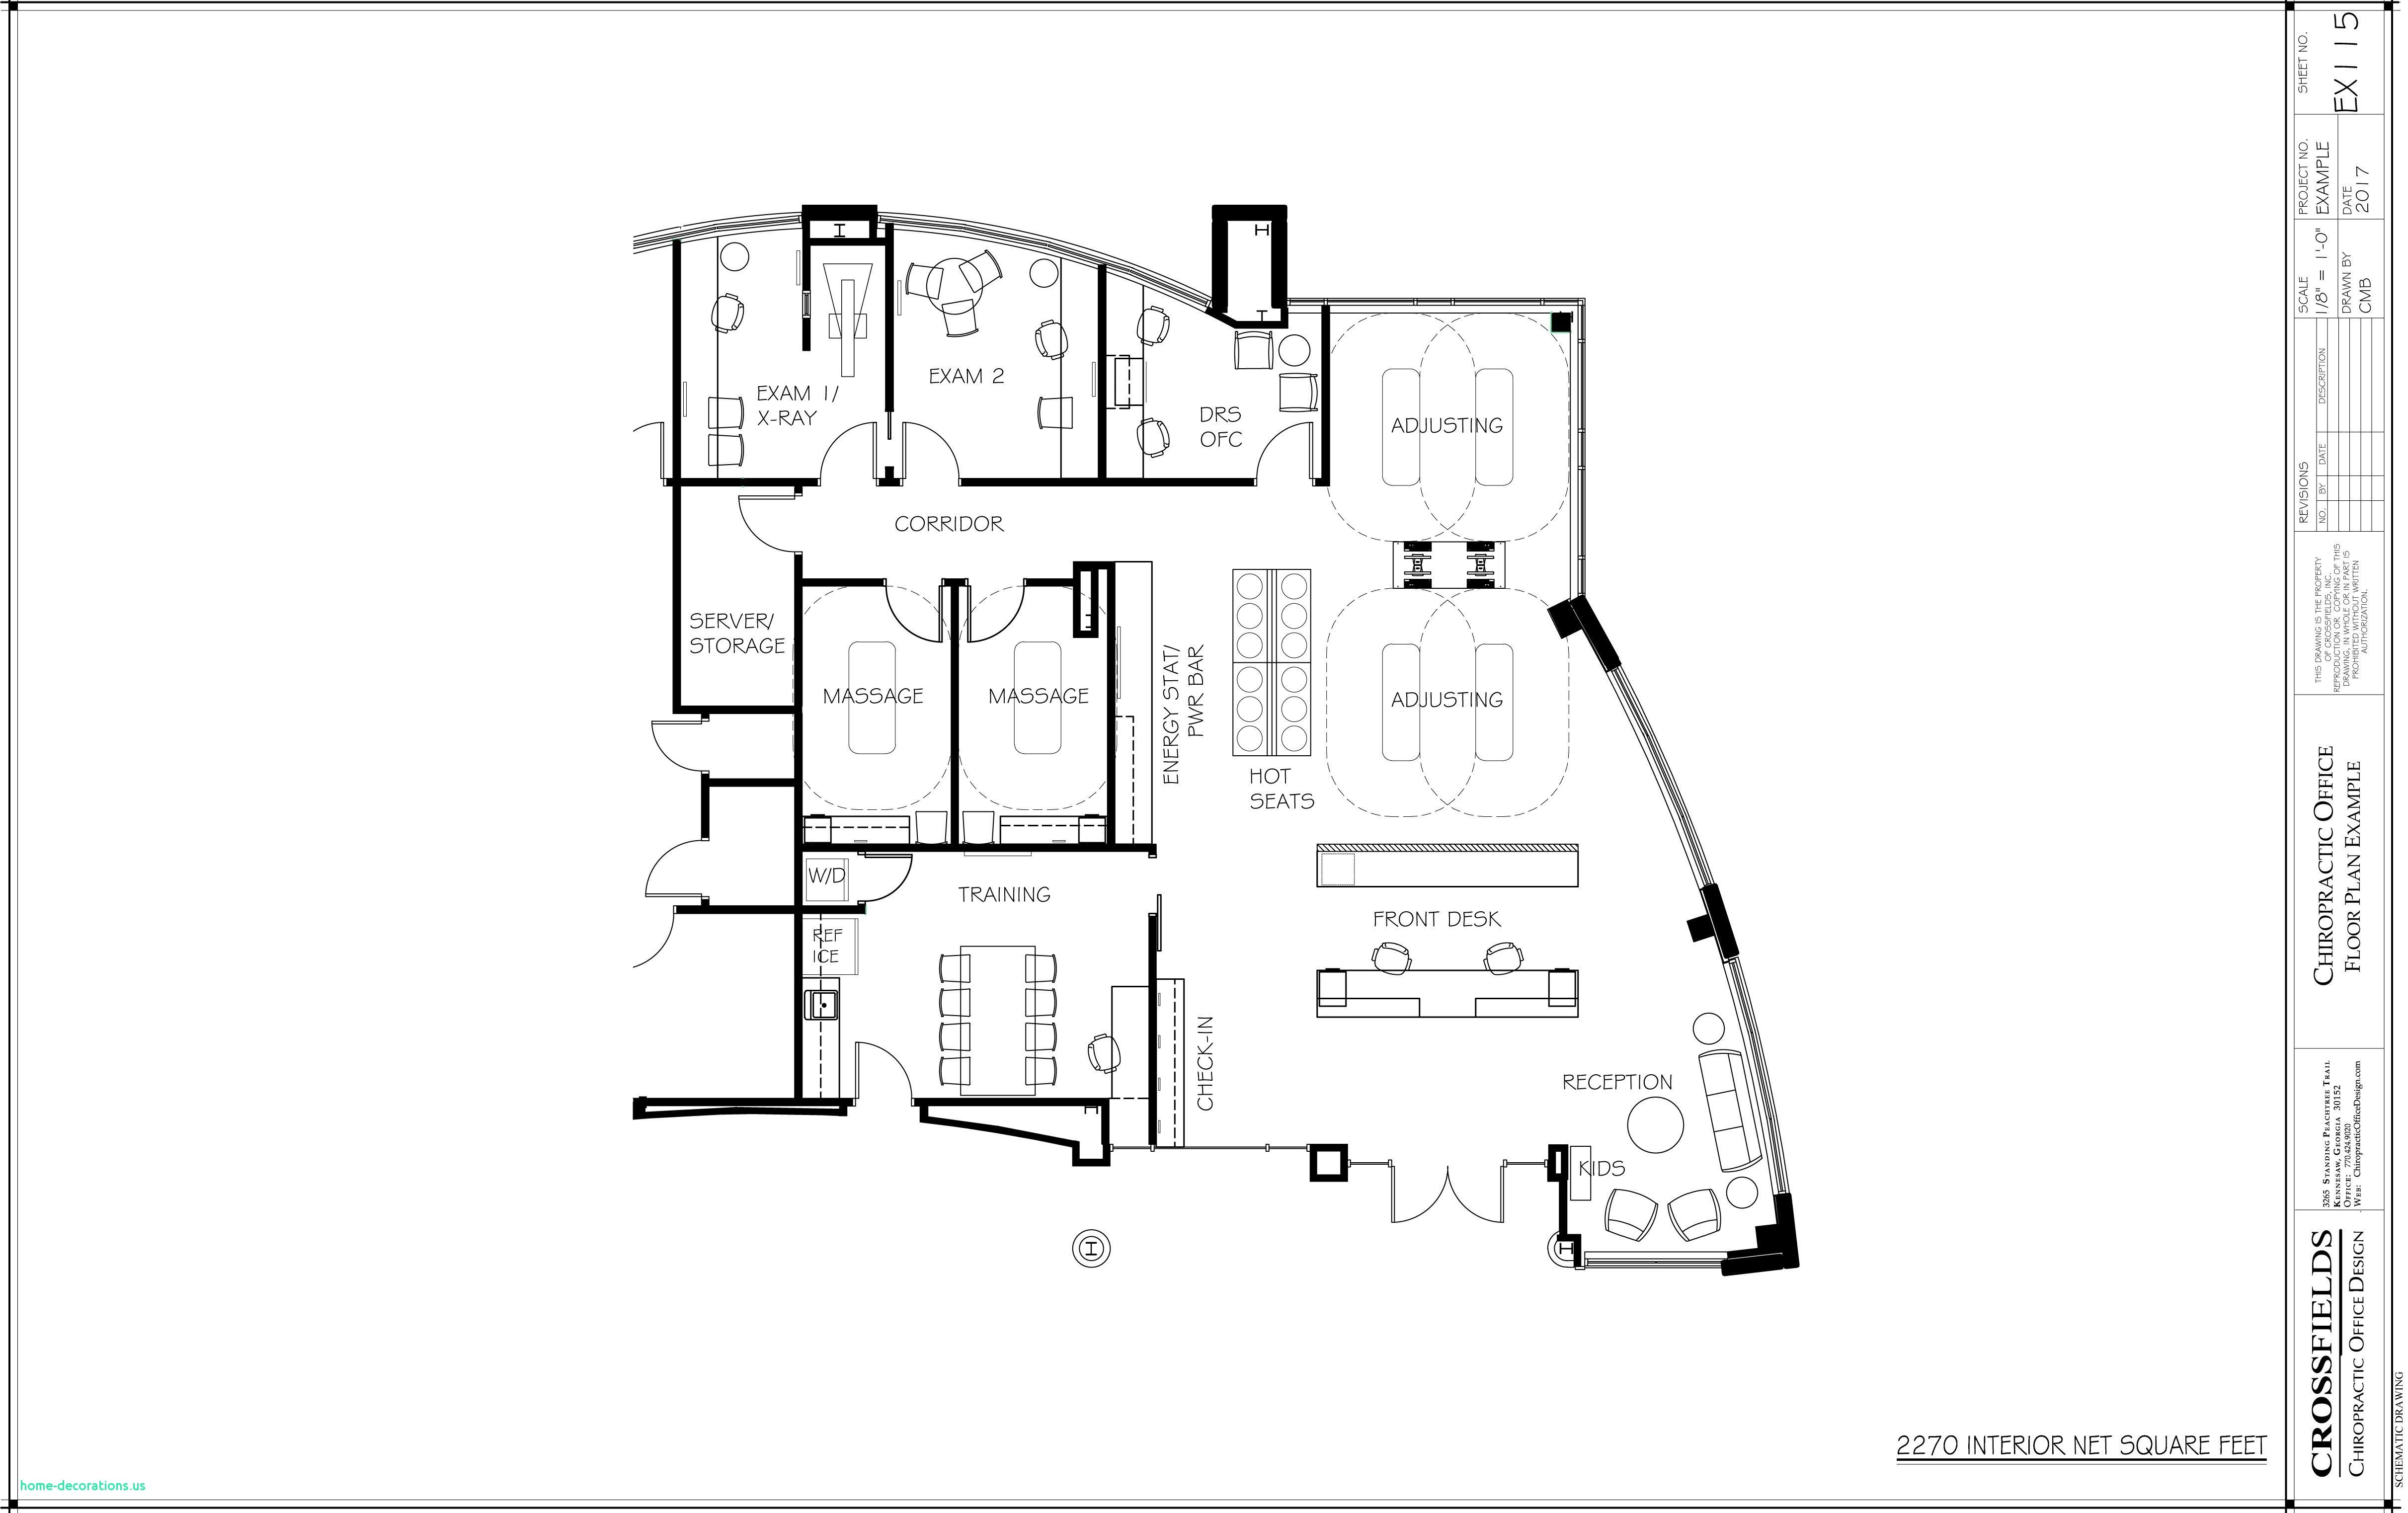 Make your own house plans online for free  New House Polans  decorate  Pinterest  House Decor and New homes